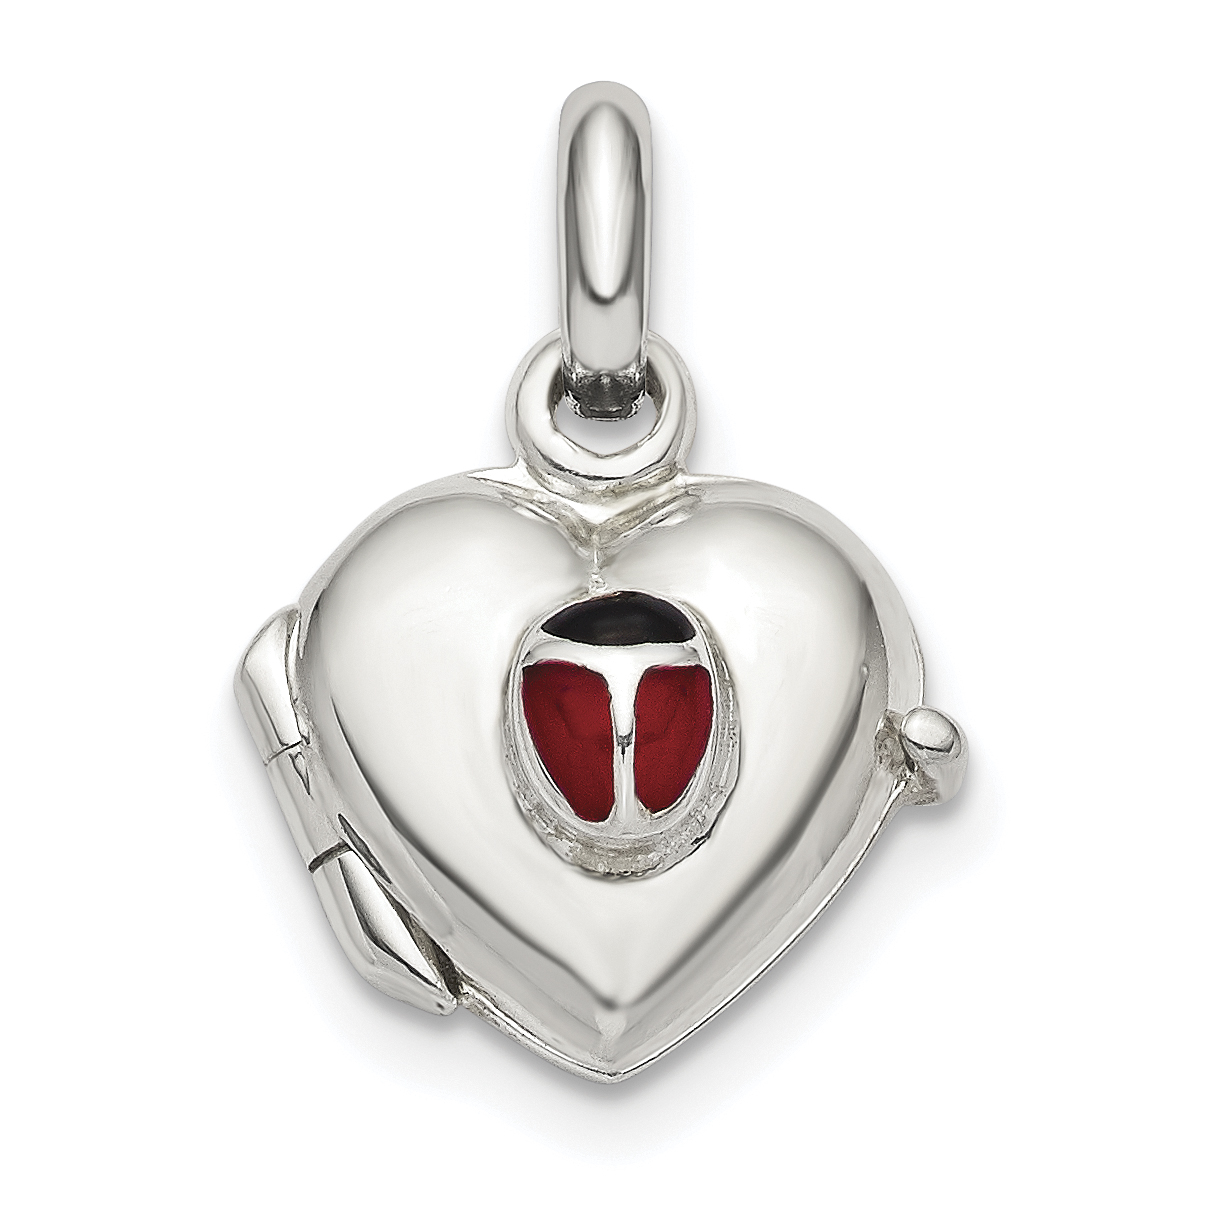 925 Sterling Silver Butterflies 12mm Heart Photo Pendant Charm Locket Chain Necklace That Holds Pictures Fine Mothers Day Jewelry For Women Gifts For Her